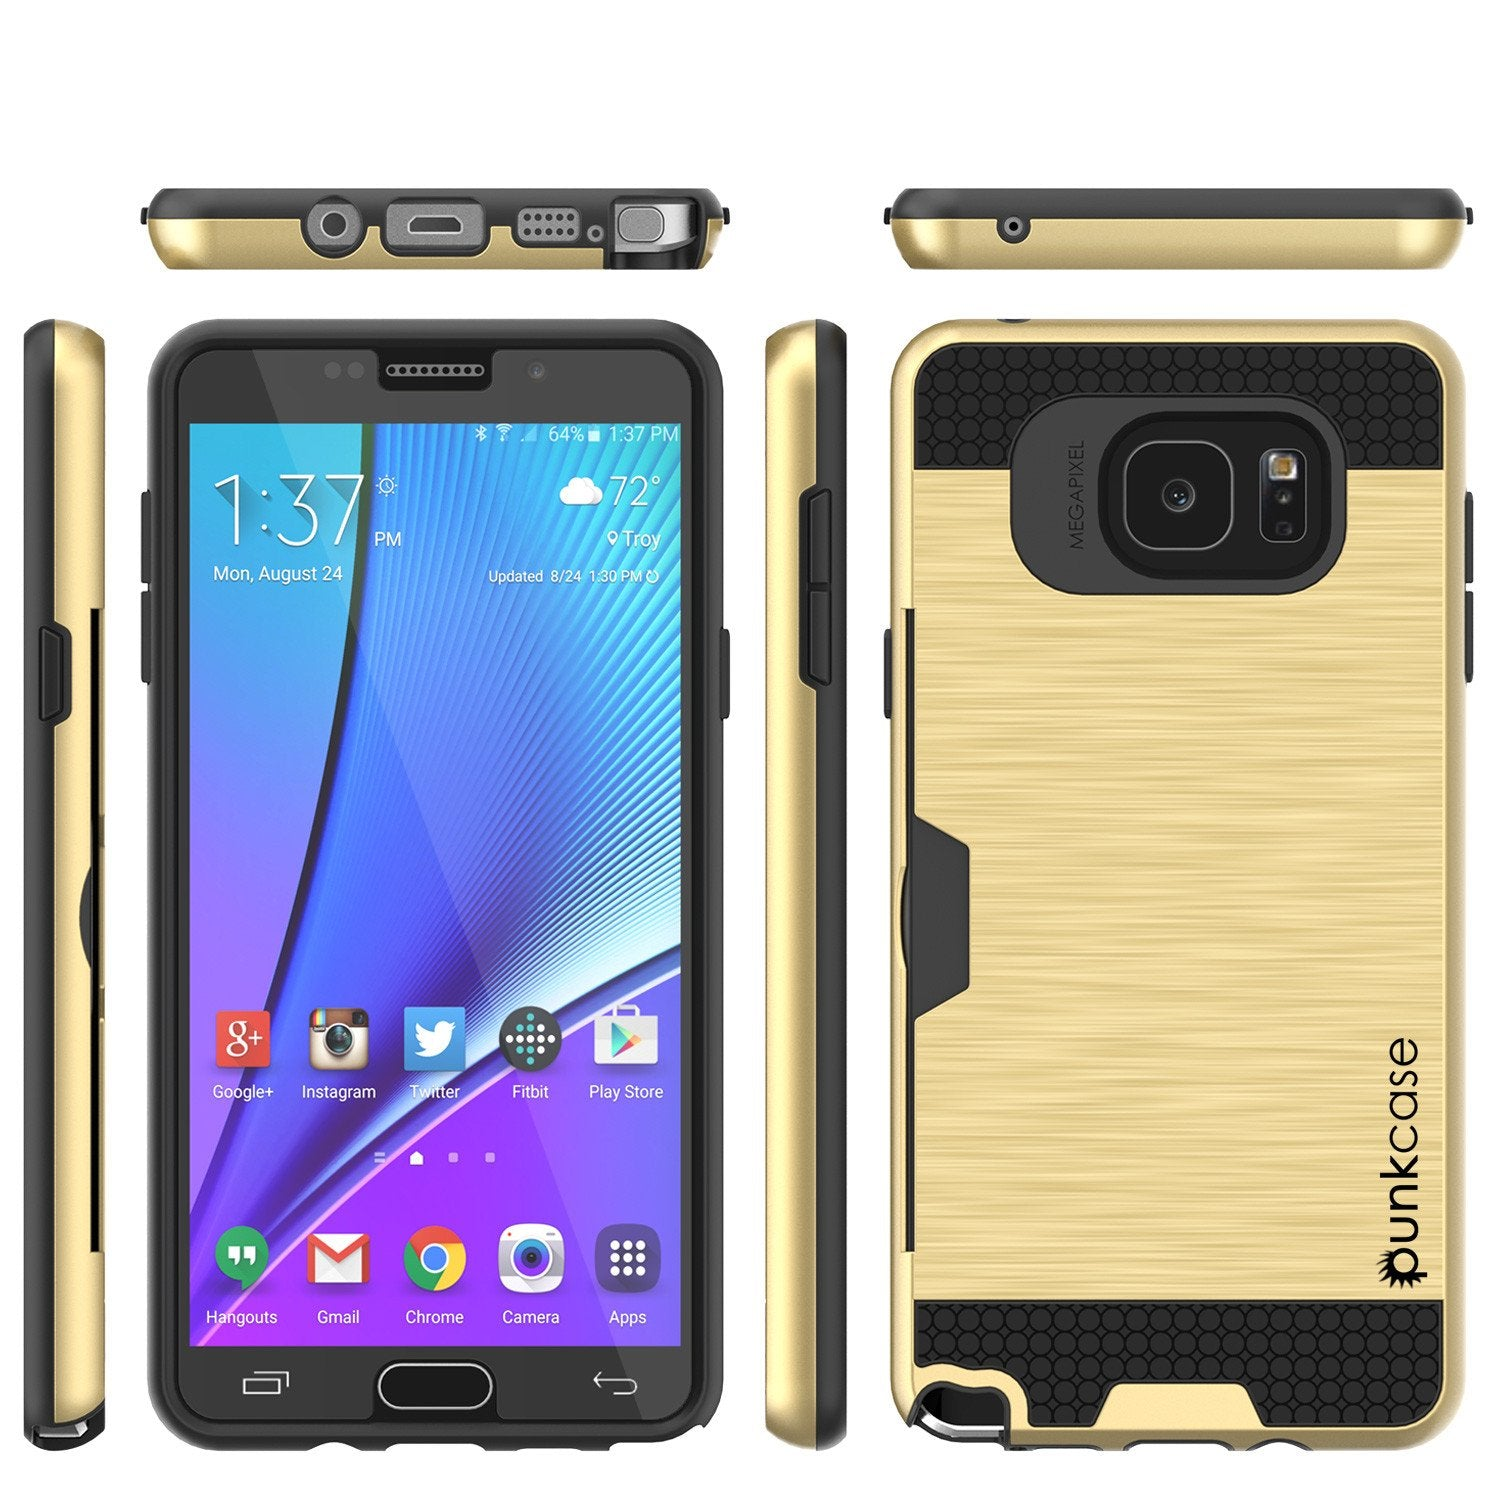 Galaxy Note 5 Case PunkCase SLOT Gold Series Slim Armor Soft Cover Case w/ Tempered Glass